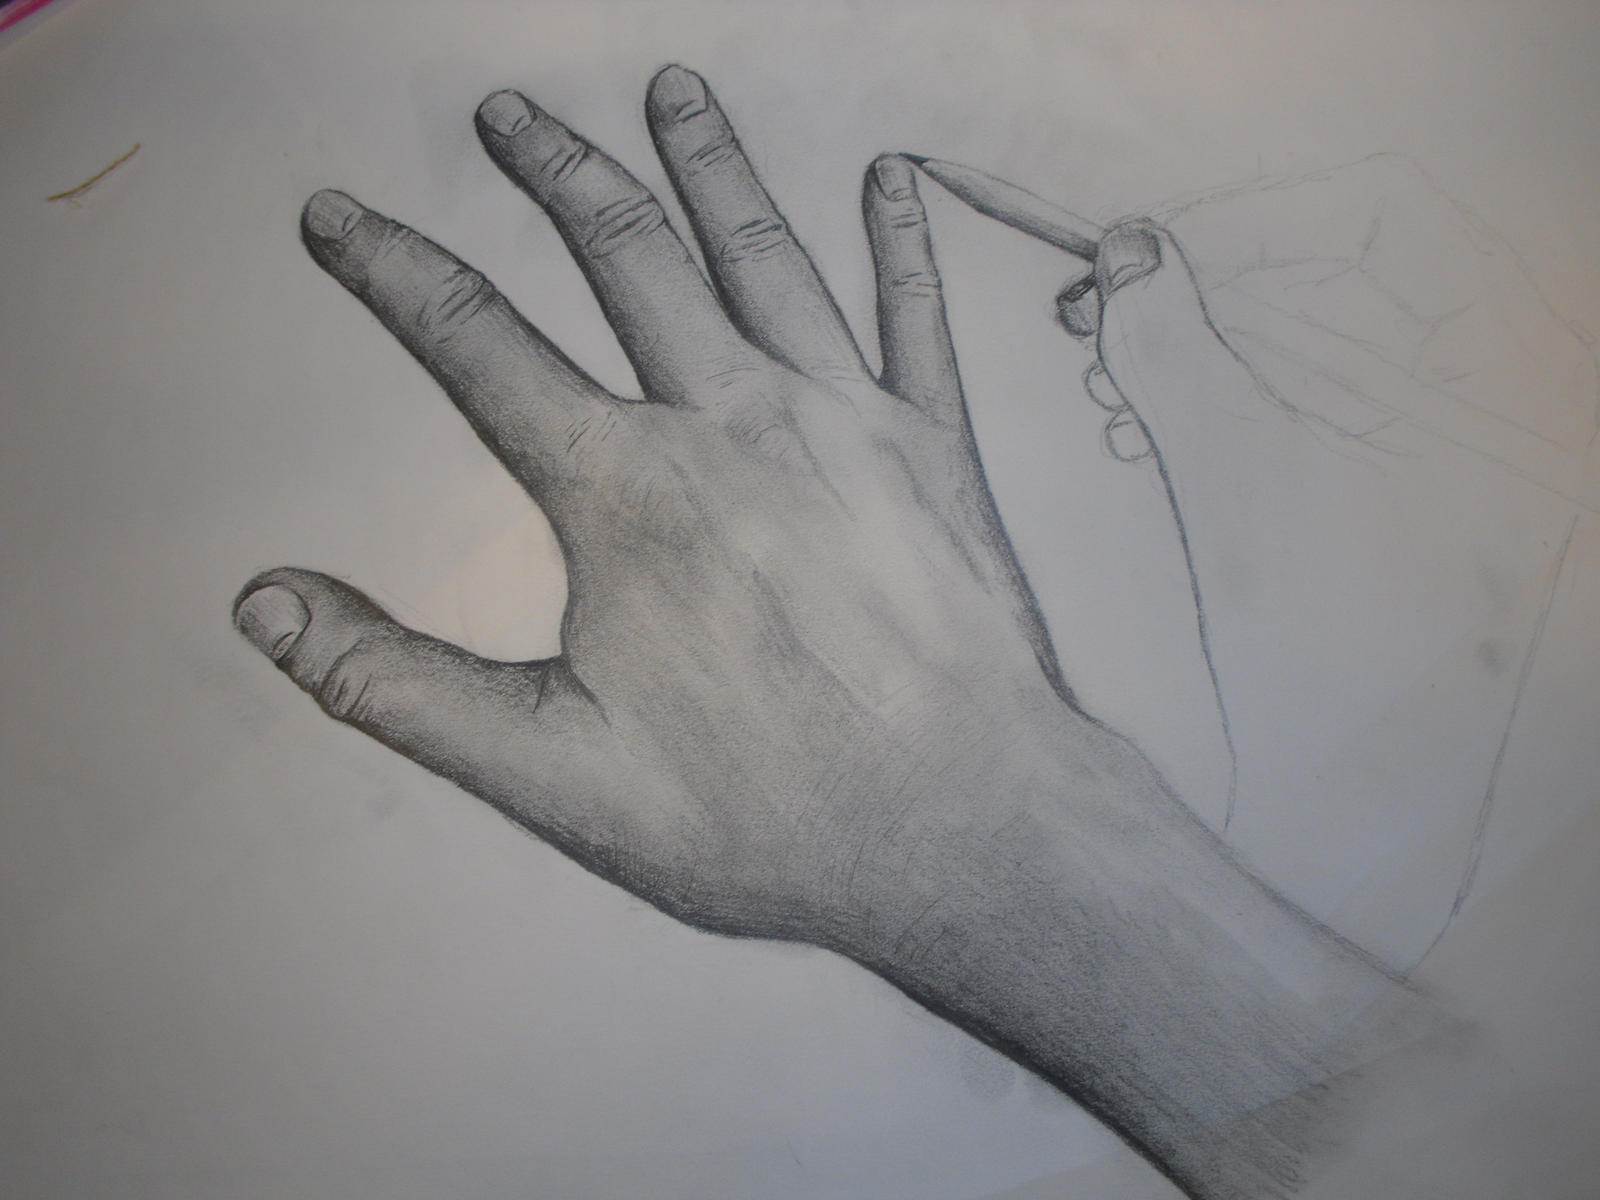 D Line Drawing Of Hand : Ic artwork critique